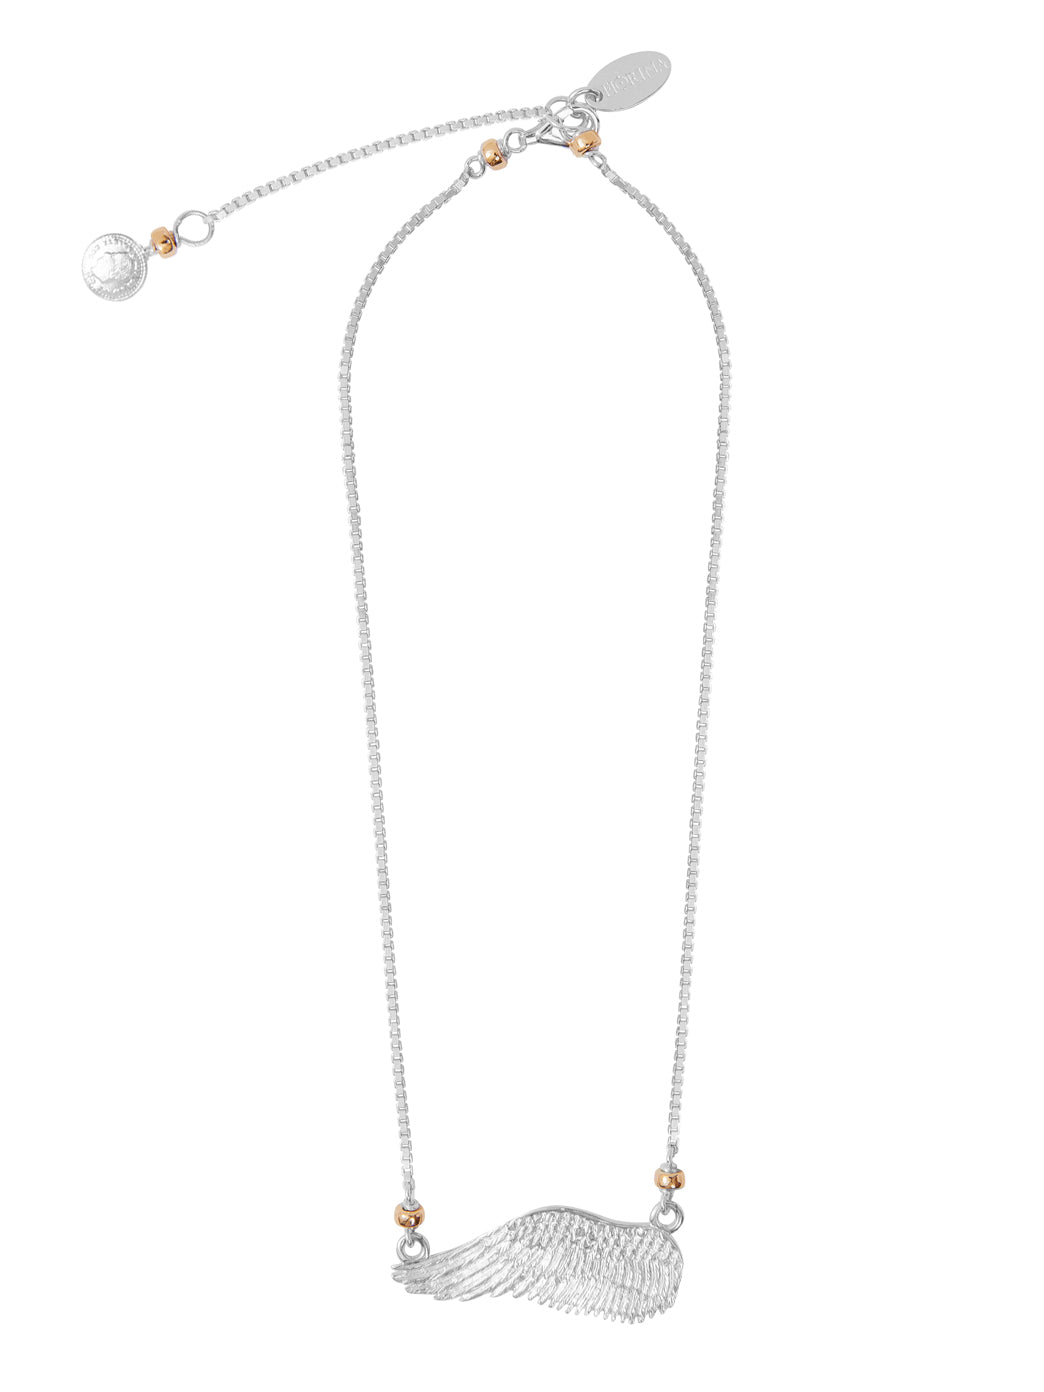 Fiorina Jewellery Aria Necklace